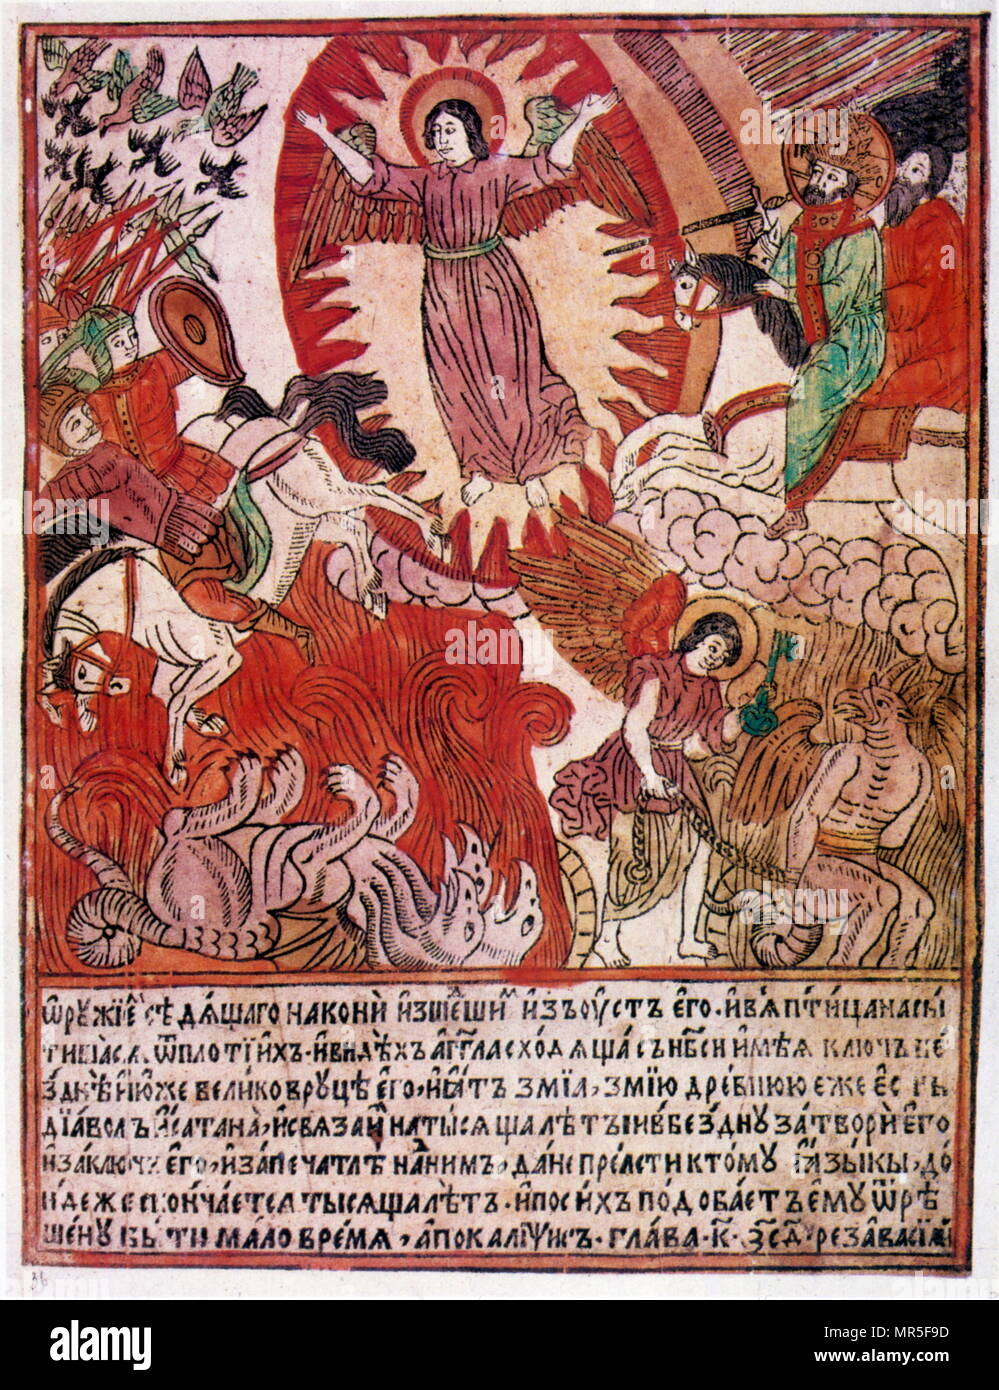 The Antichrist by Vasily Koren, Ukrainian, Russian artist of religious prints and woodcuts. 1668 - Stock Image